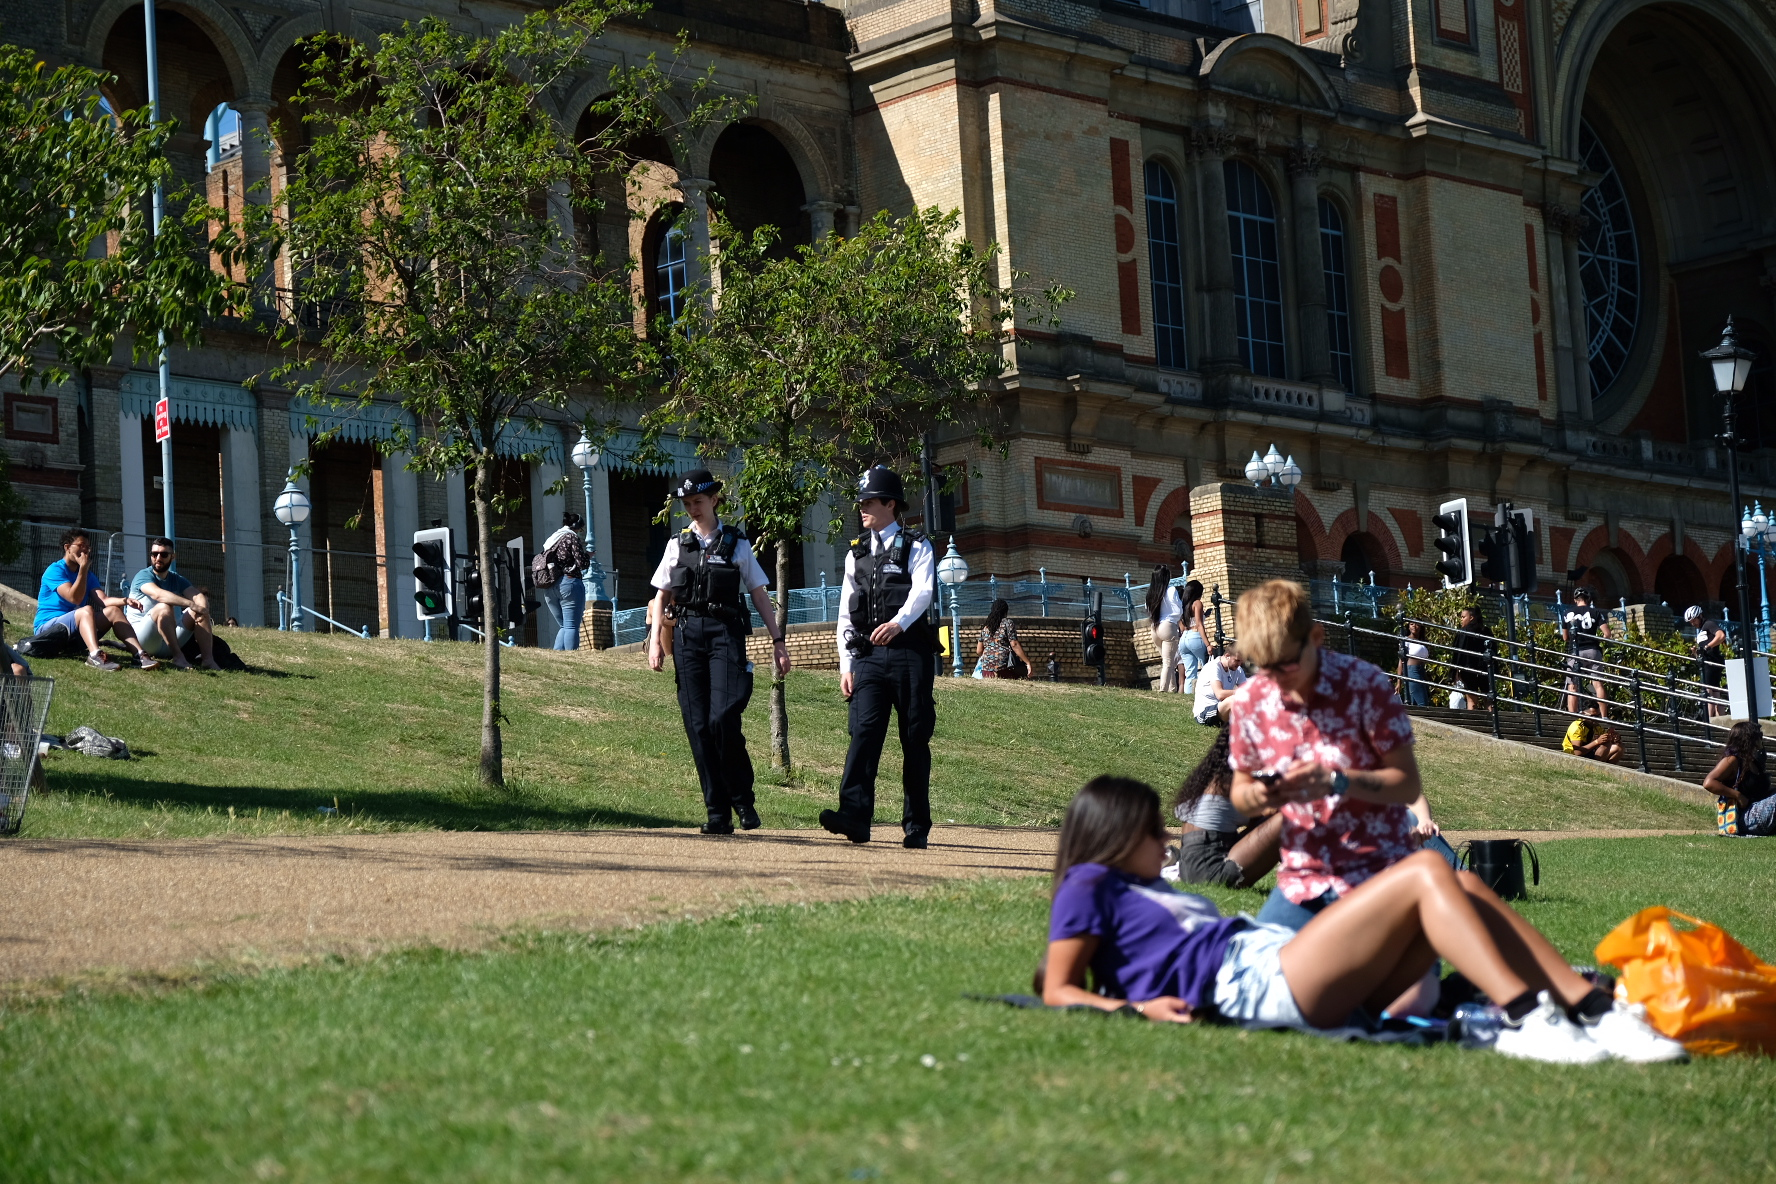 Police officers patrol as people enjoy the weather at Alexandra Palace, London, after the introduction of measures to bring the country out of lockdown. (Photo by Ian Hinchliffe/PA Images via Getty Images)